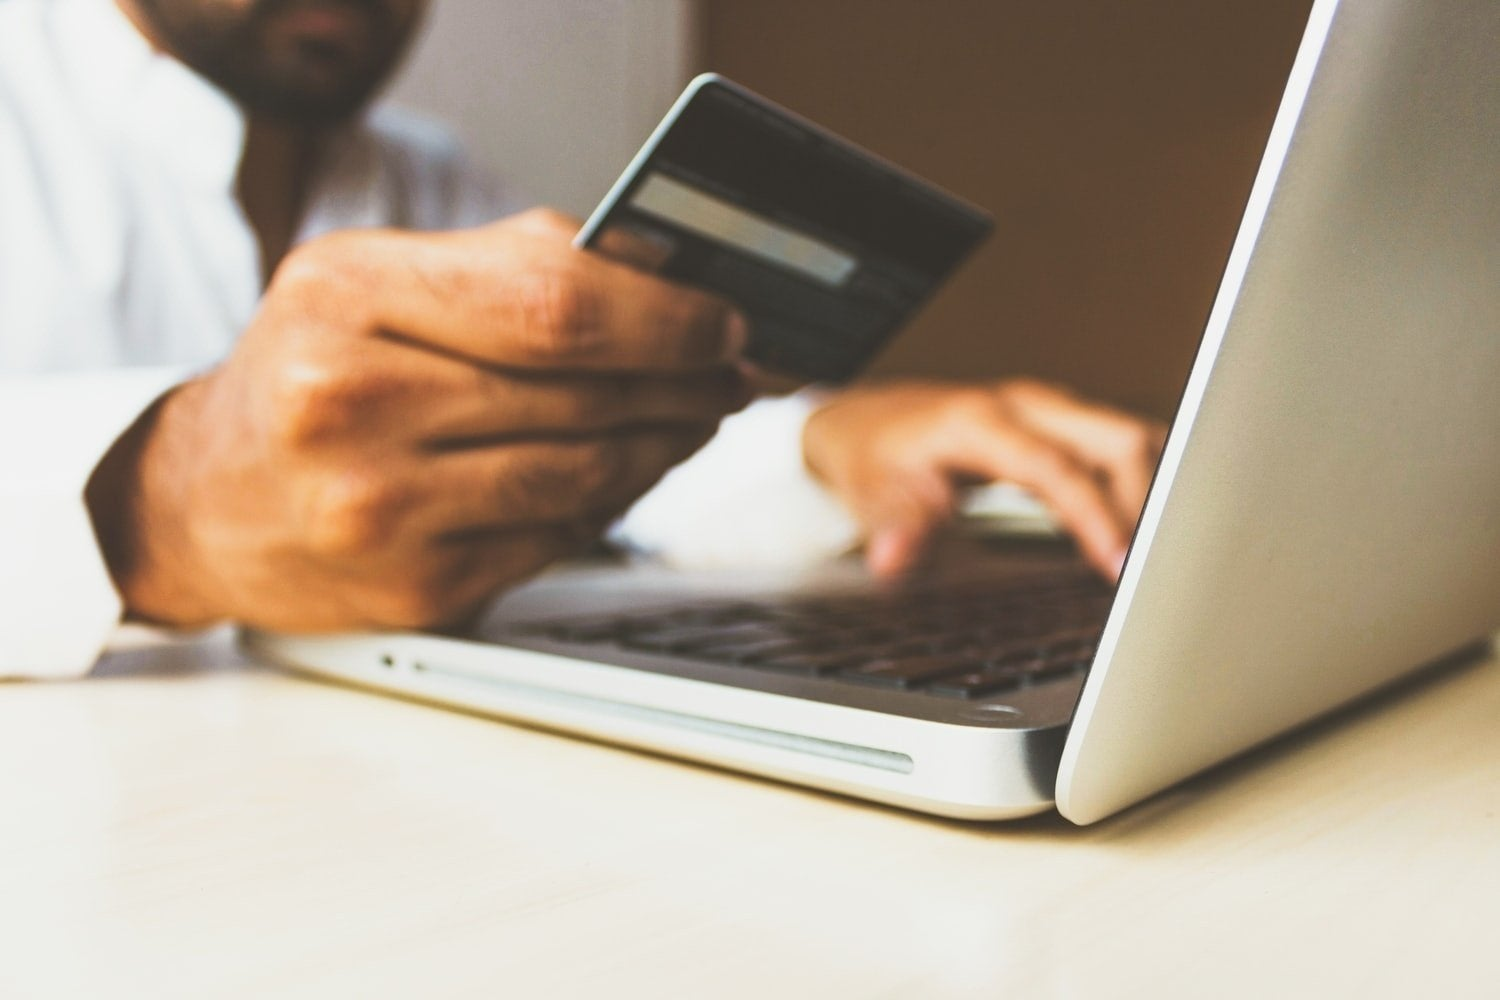 Person using laptop holding credit card